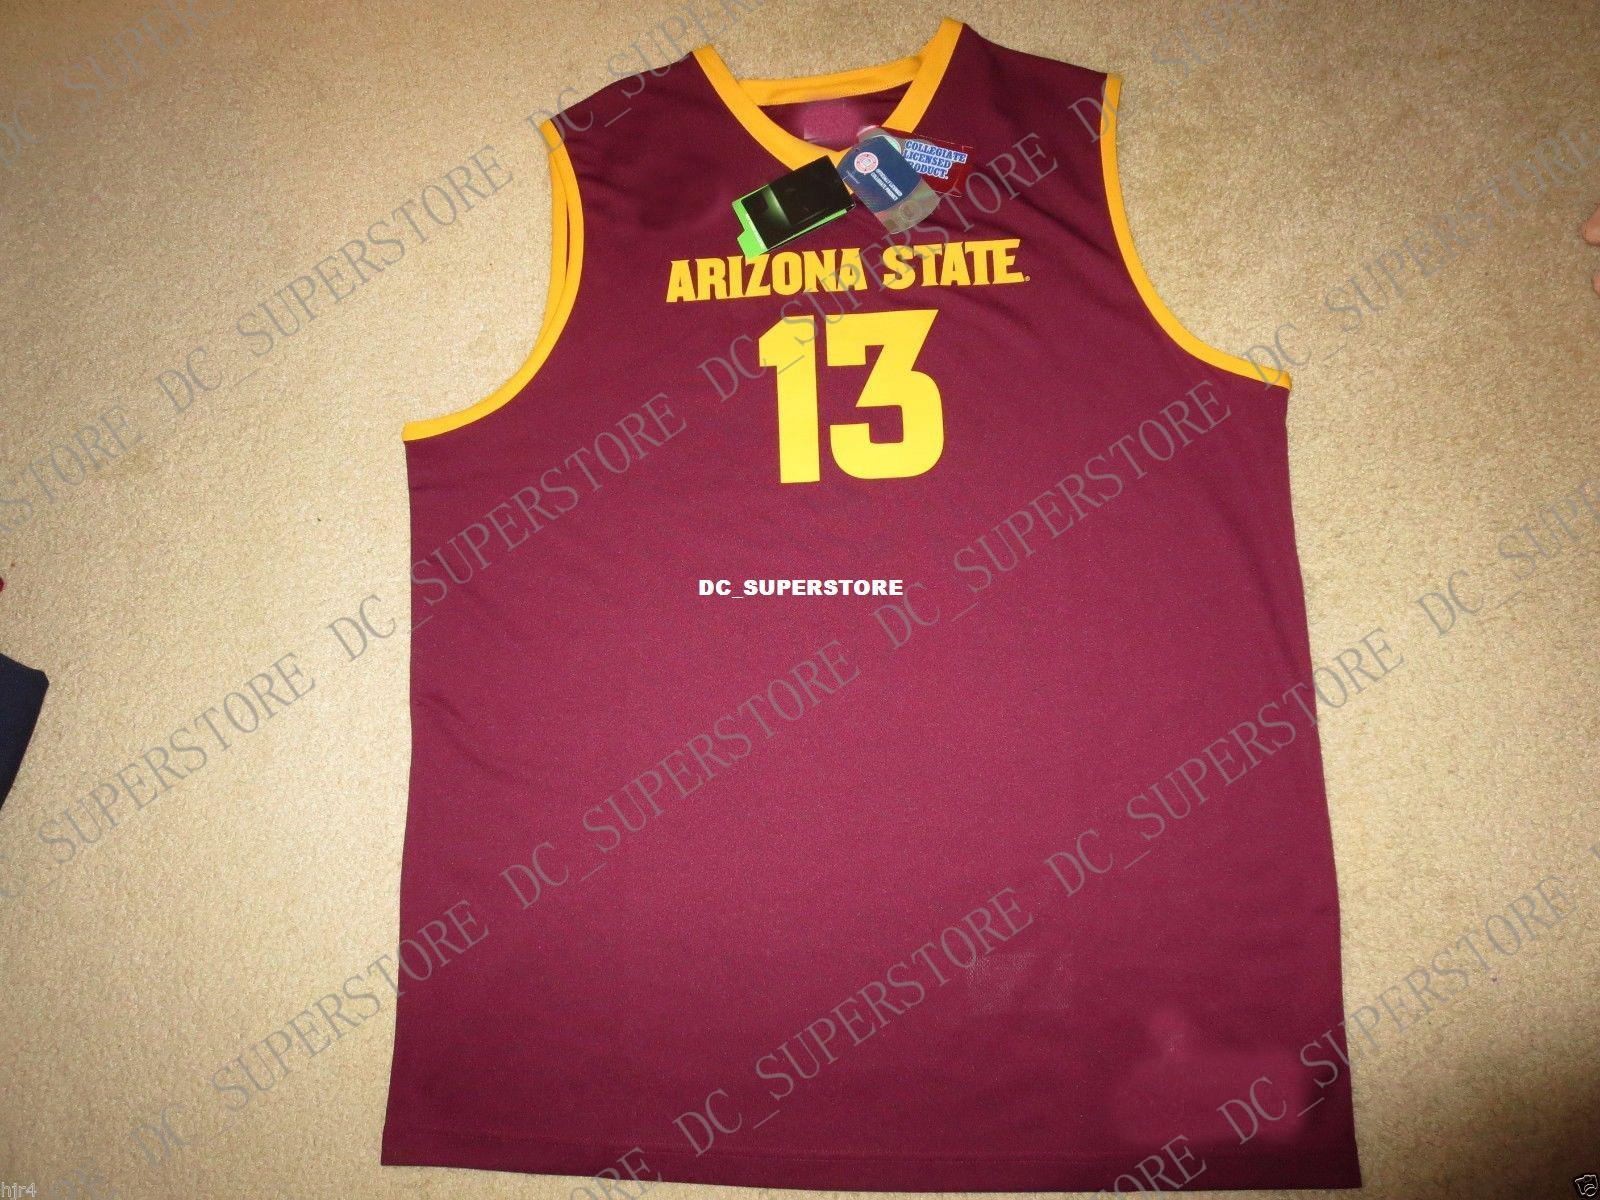 43d75404e10 2019 Cheap Custom James Harden  13 Arizona State Sun Devils Basketball  Jersey NEW Stitched Customize Any Number Name MEN WOMEN YOUTH XS 5XL From  ...